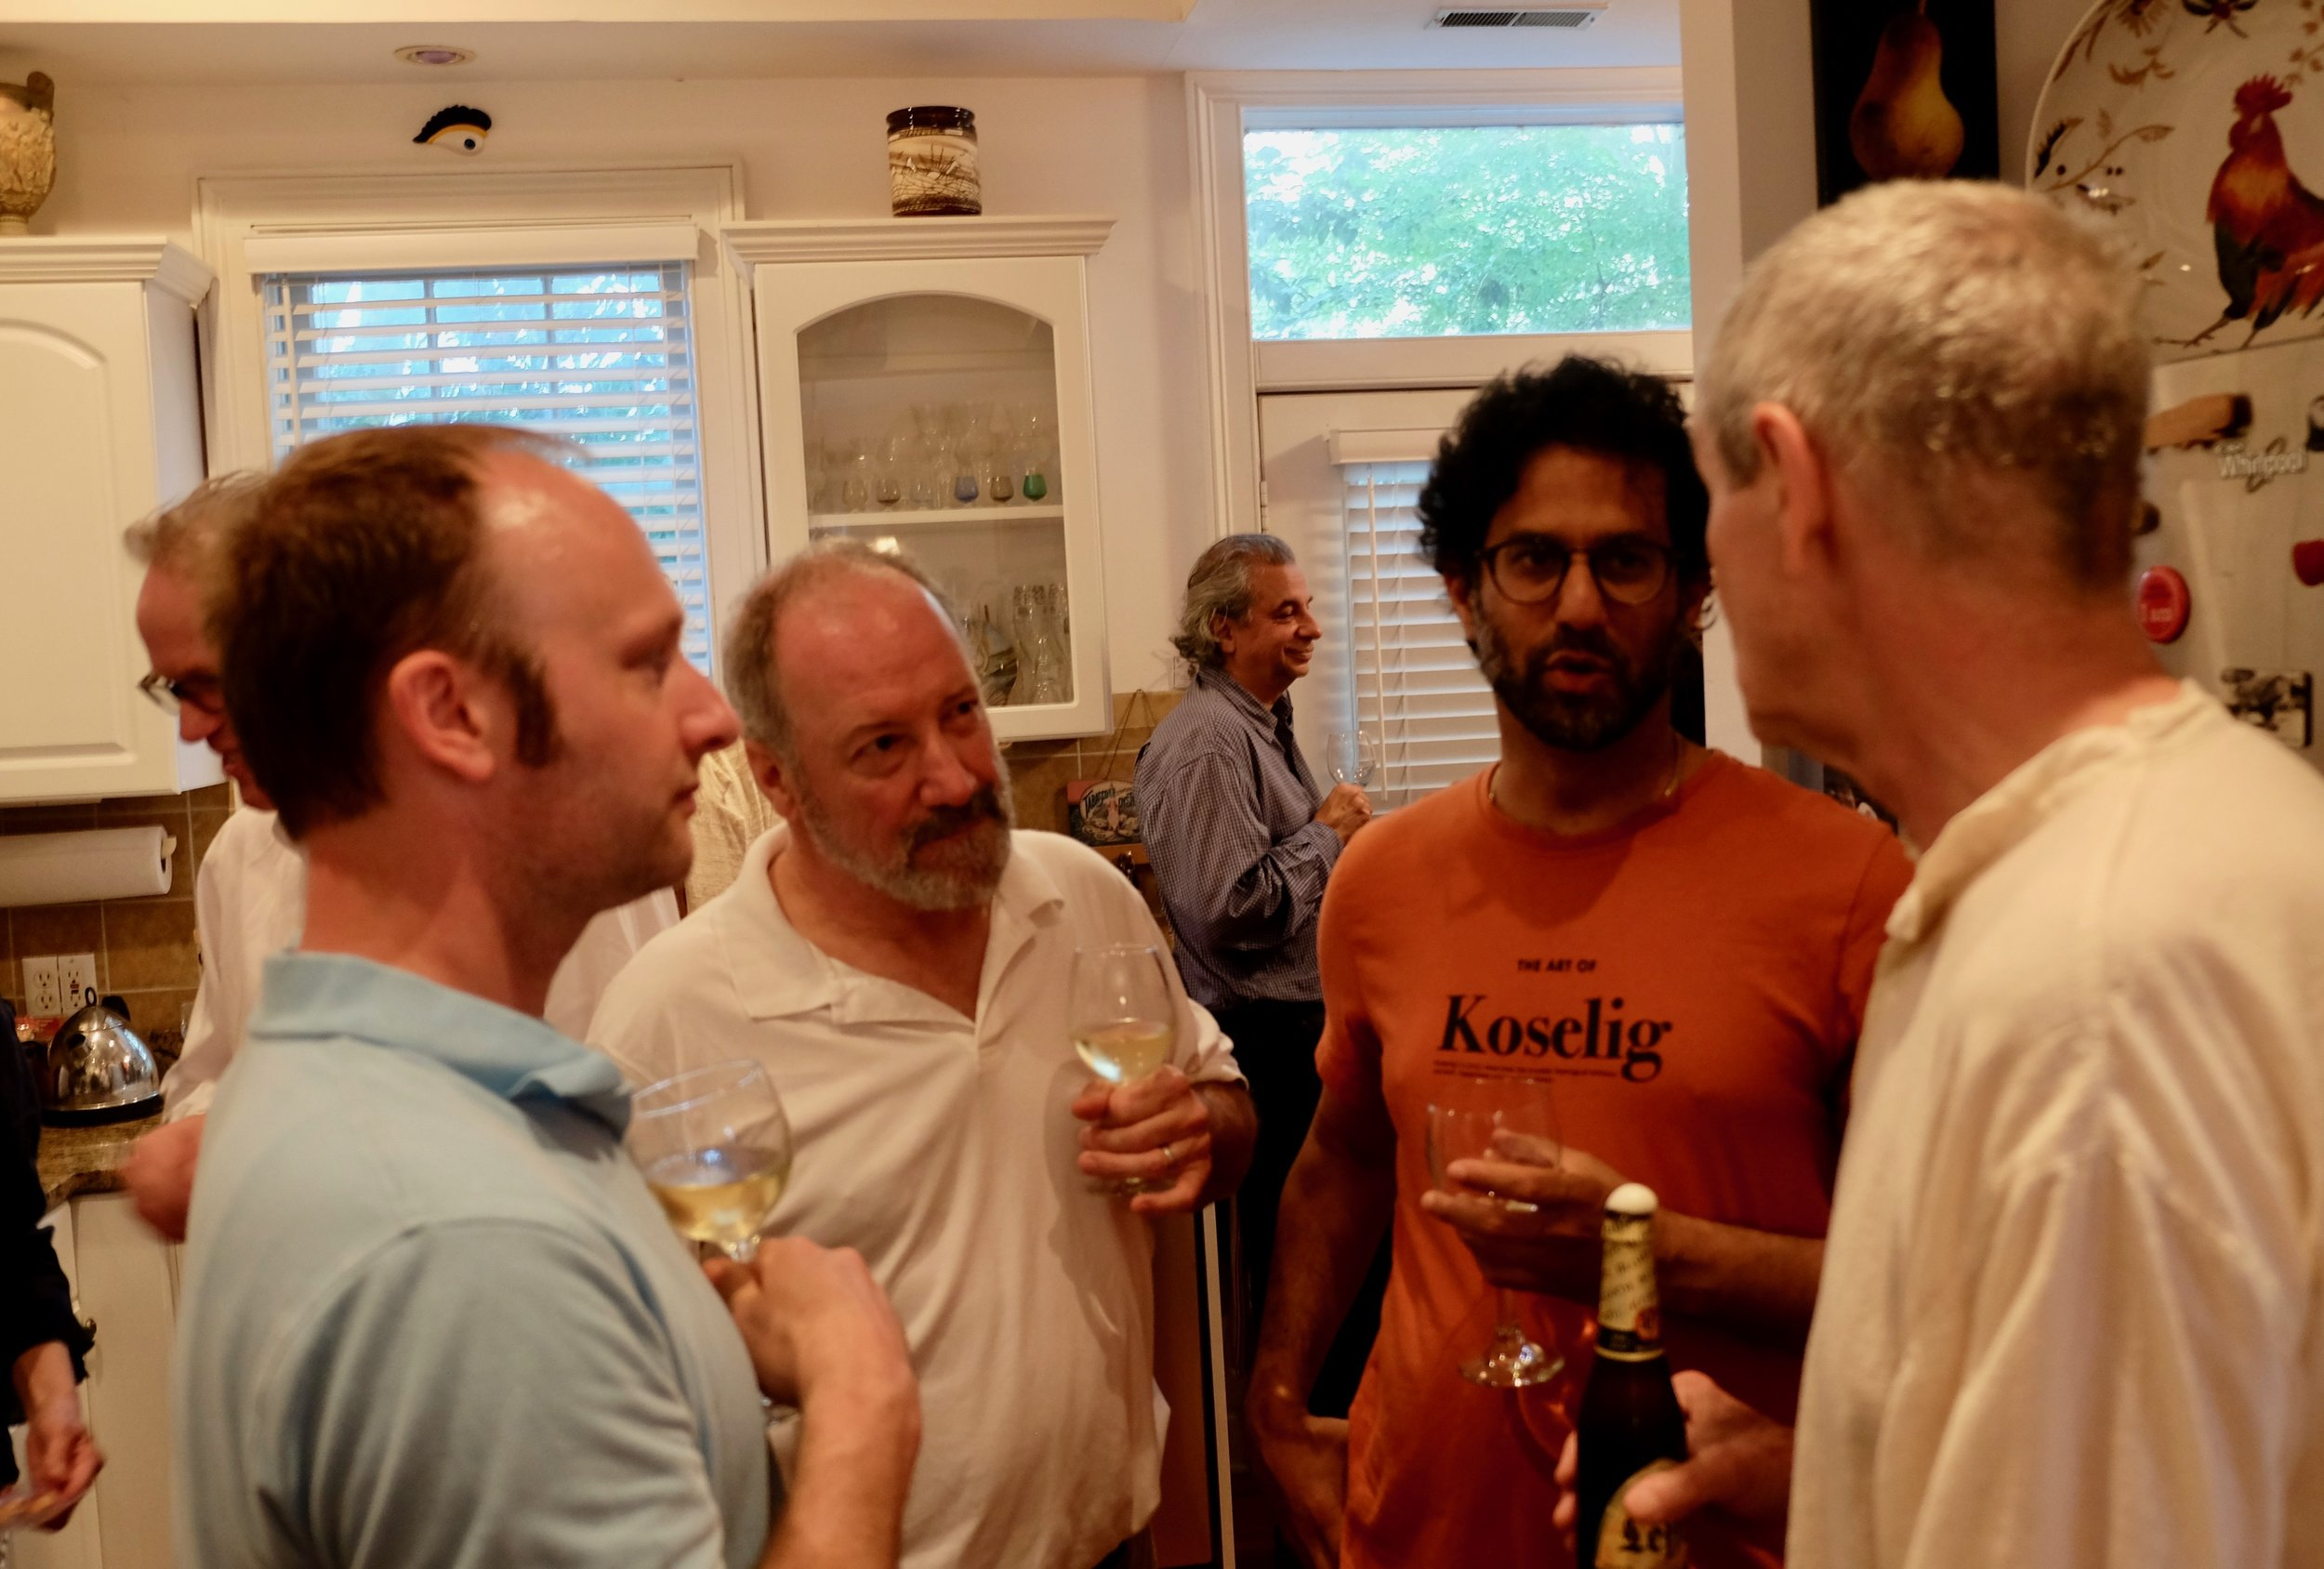 Matt Shockey, David Cummiskey, Anand Vaidya, Mark Siderits